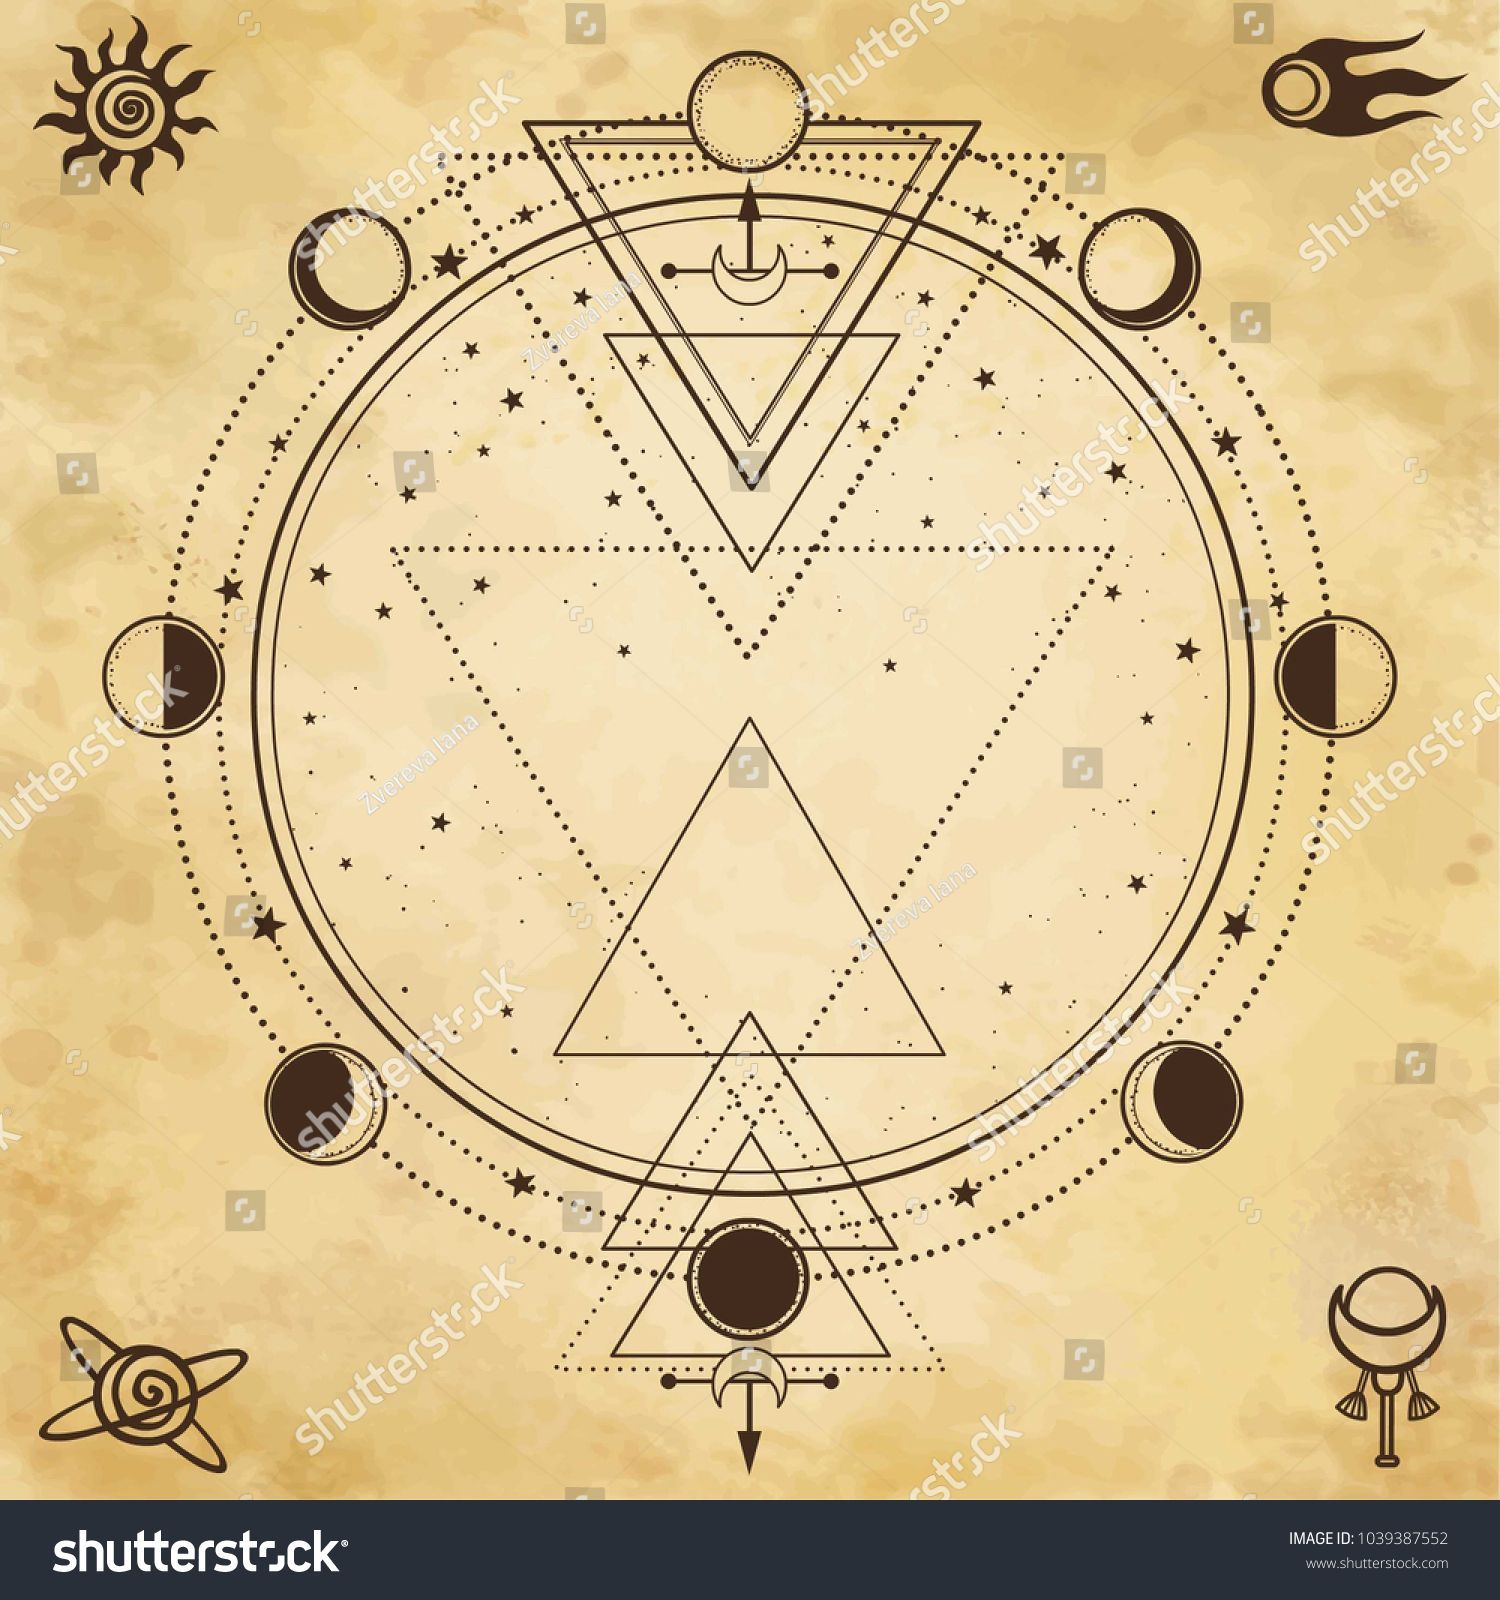 Sacred Geometry Moon Women/'s Tee Image by Shutterstock